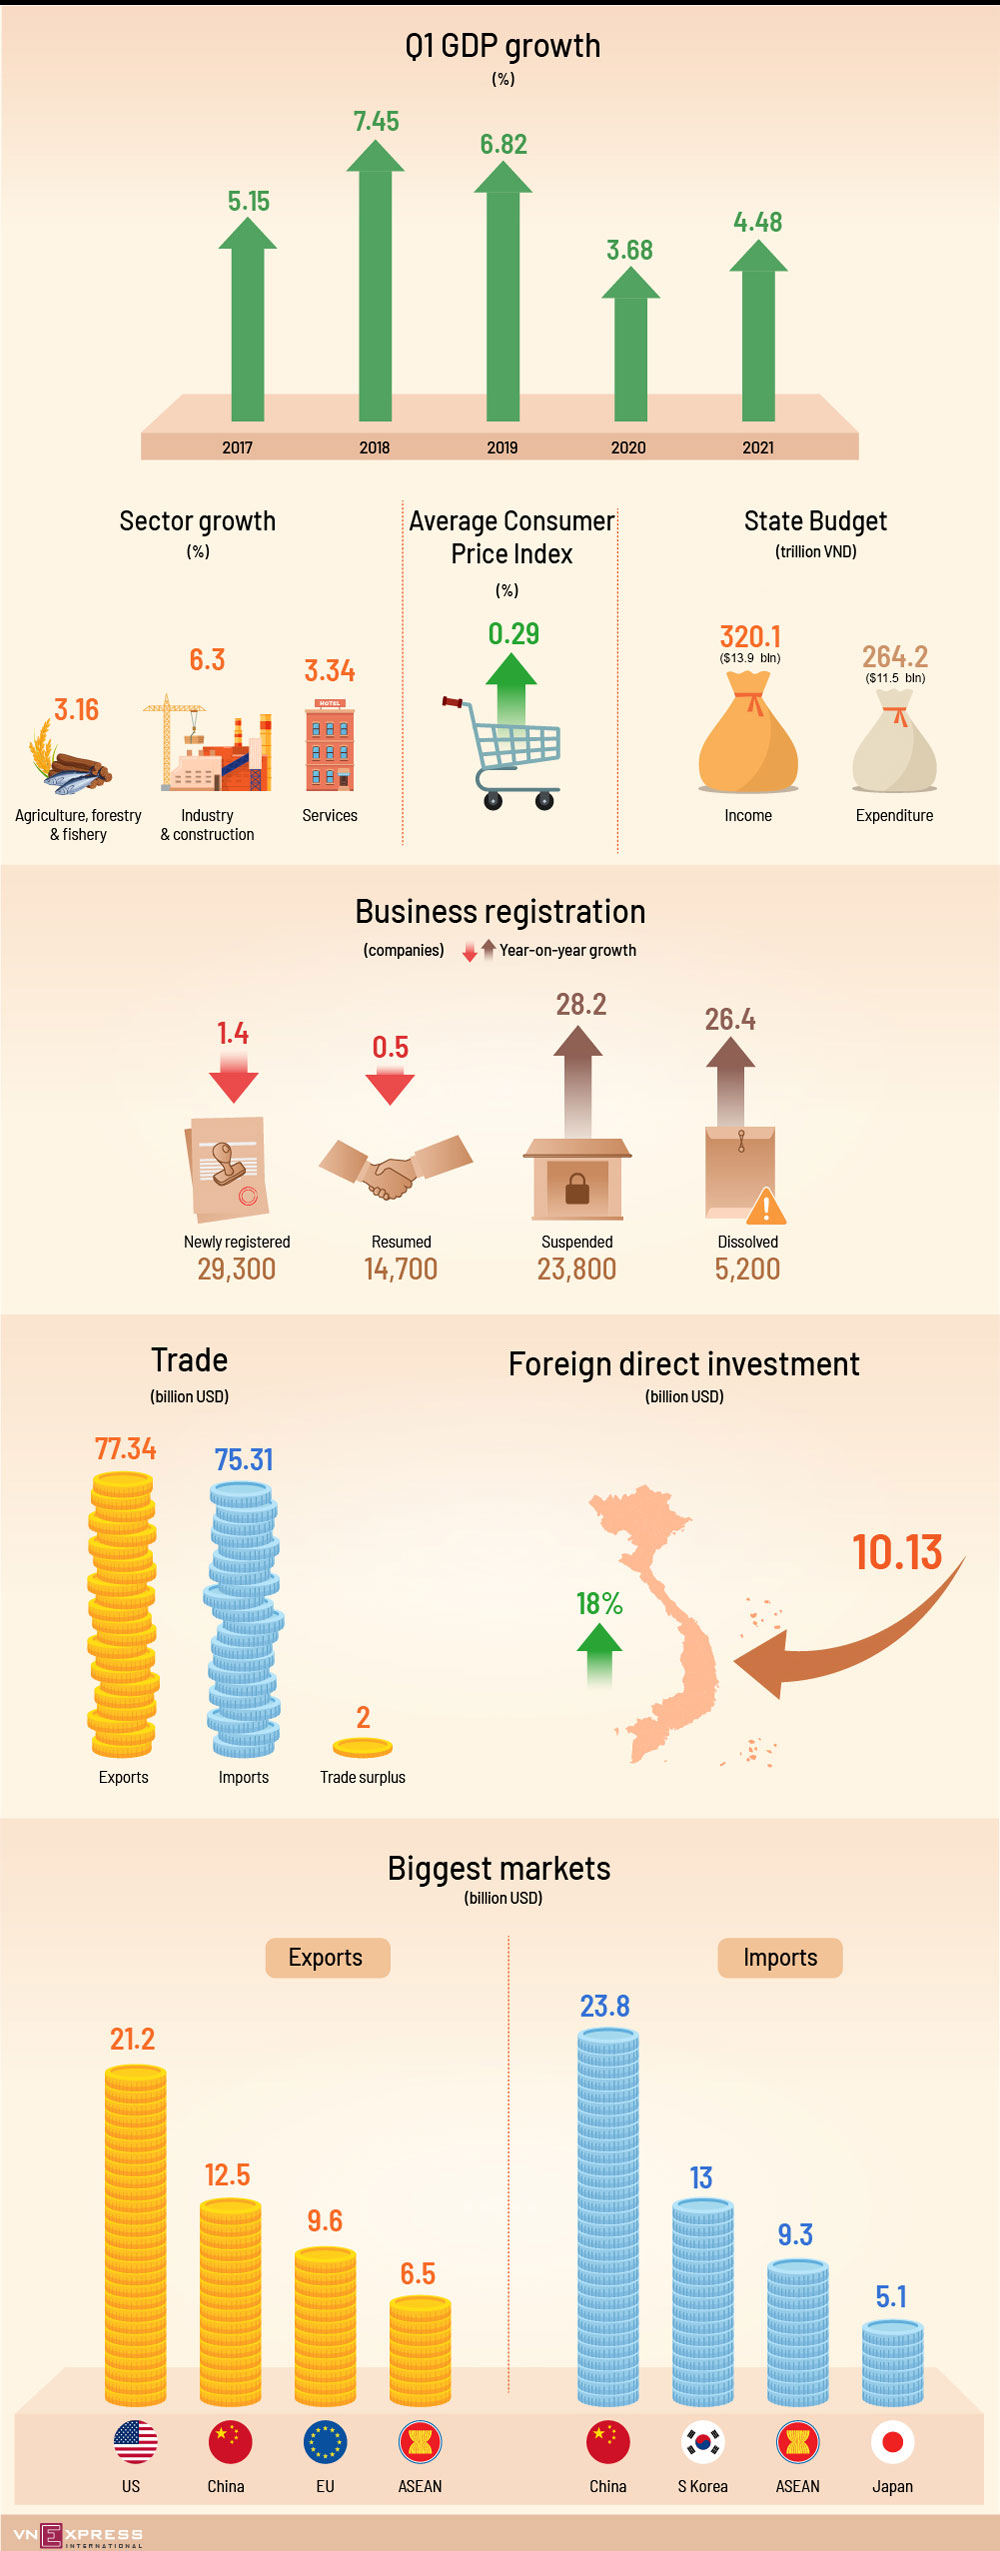 Economy, positive start, Covid-19 pandemic, improved GDP growth, foreign direct investment, positive growth